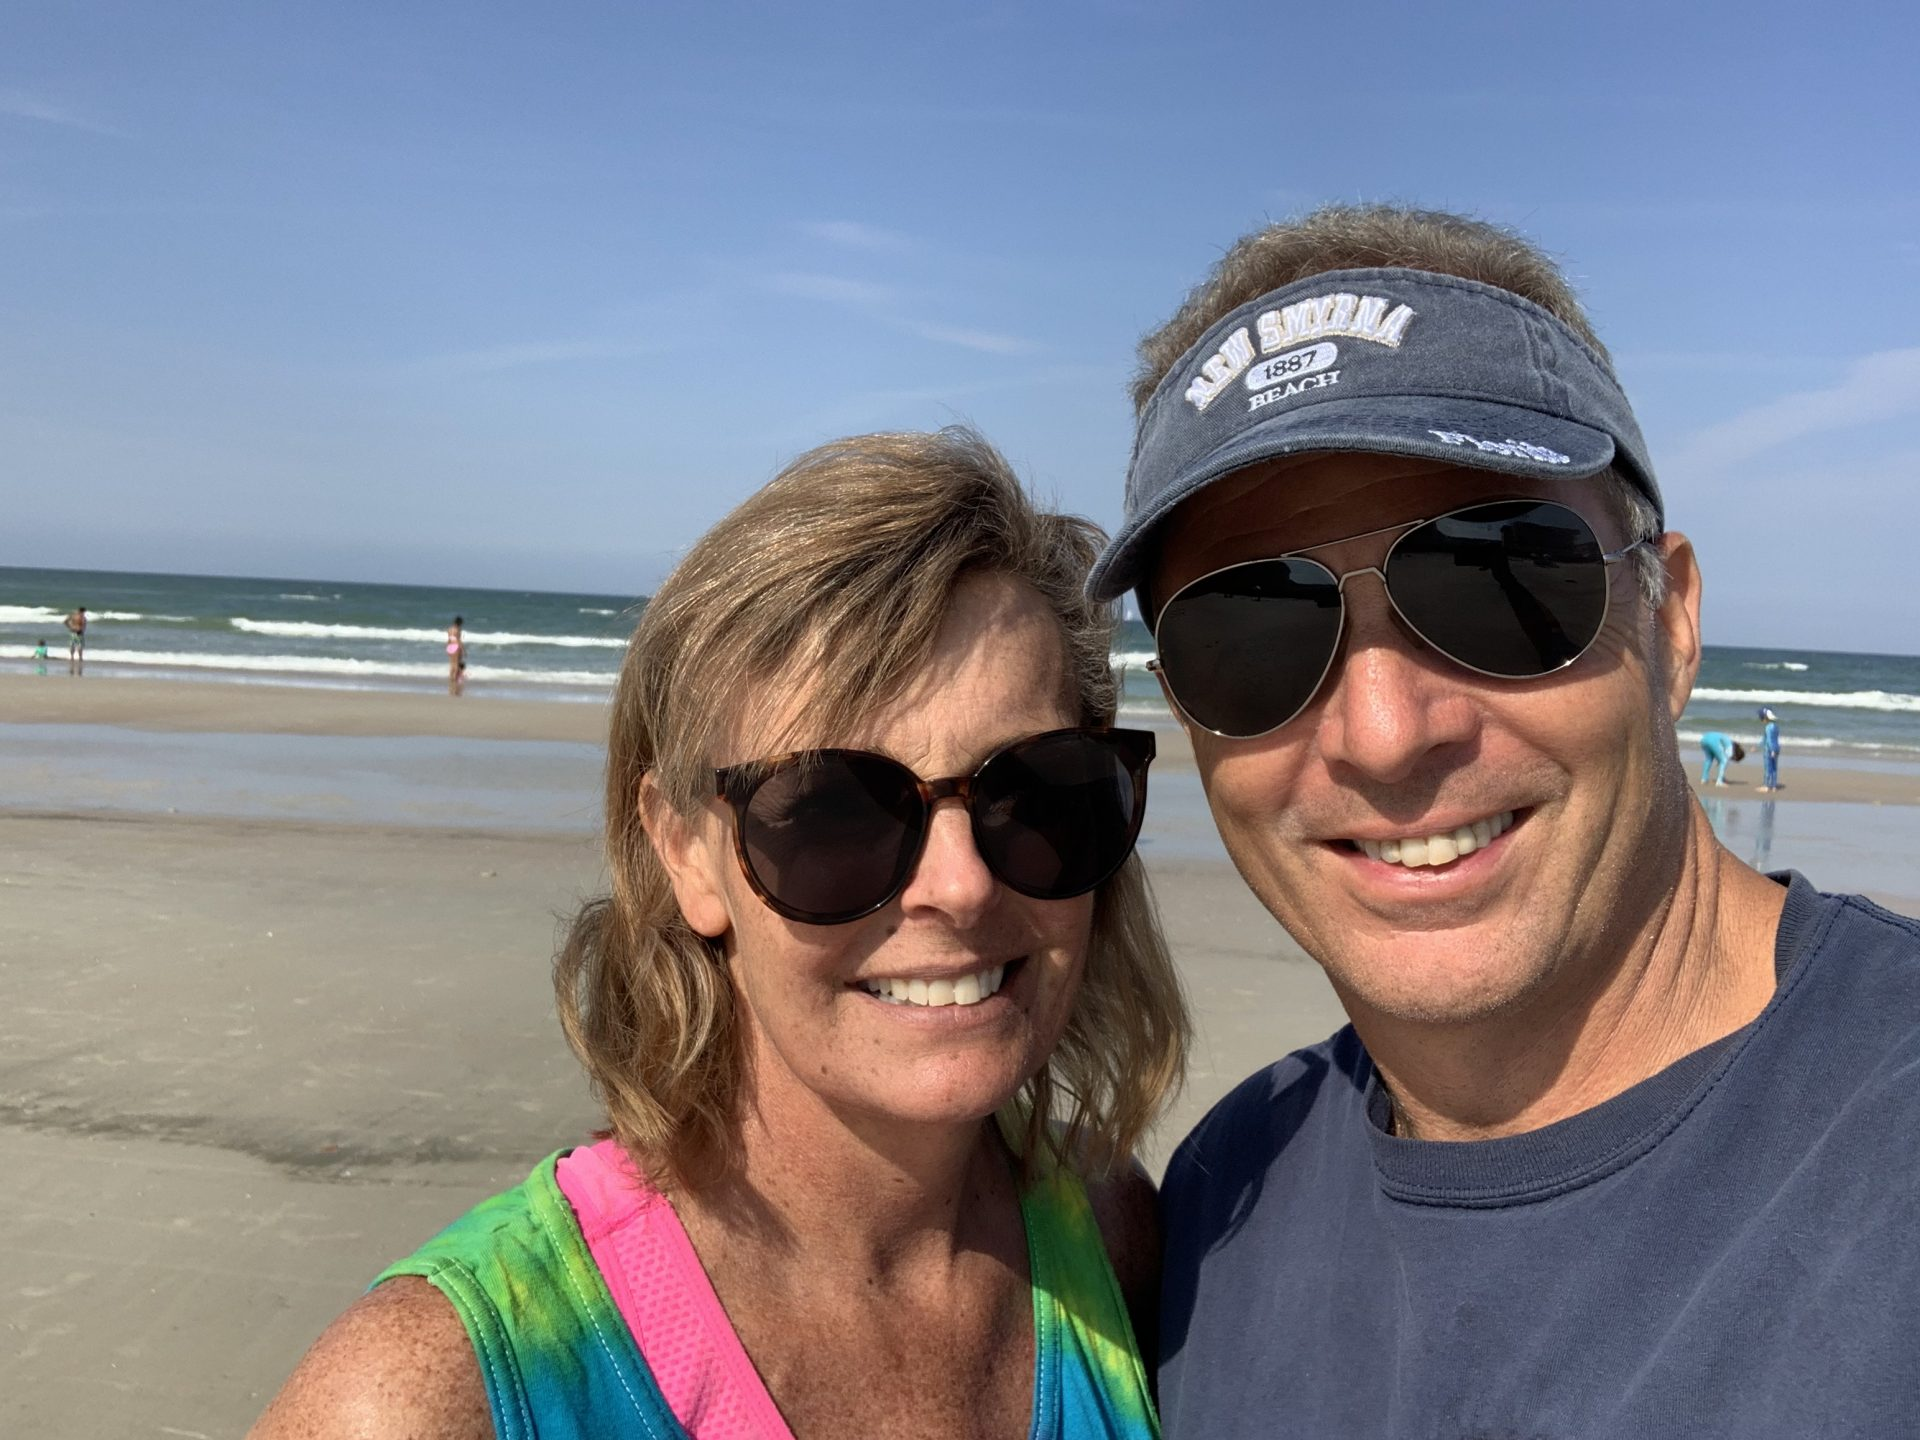 Julie and I at her favorite place the beach